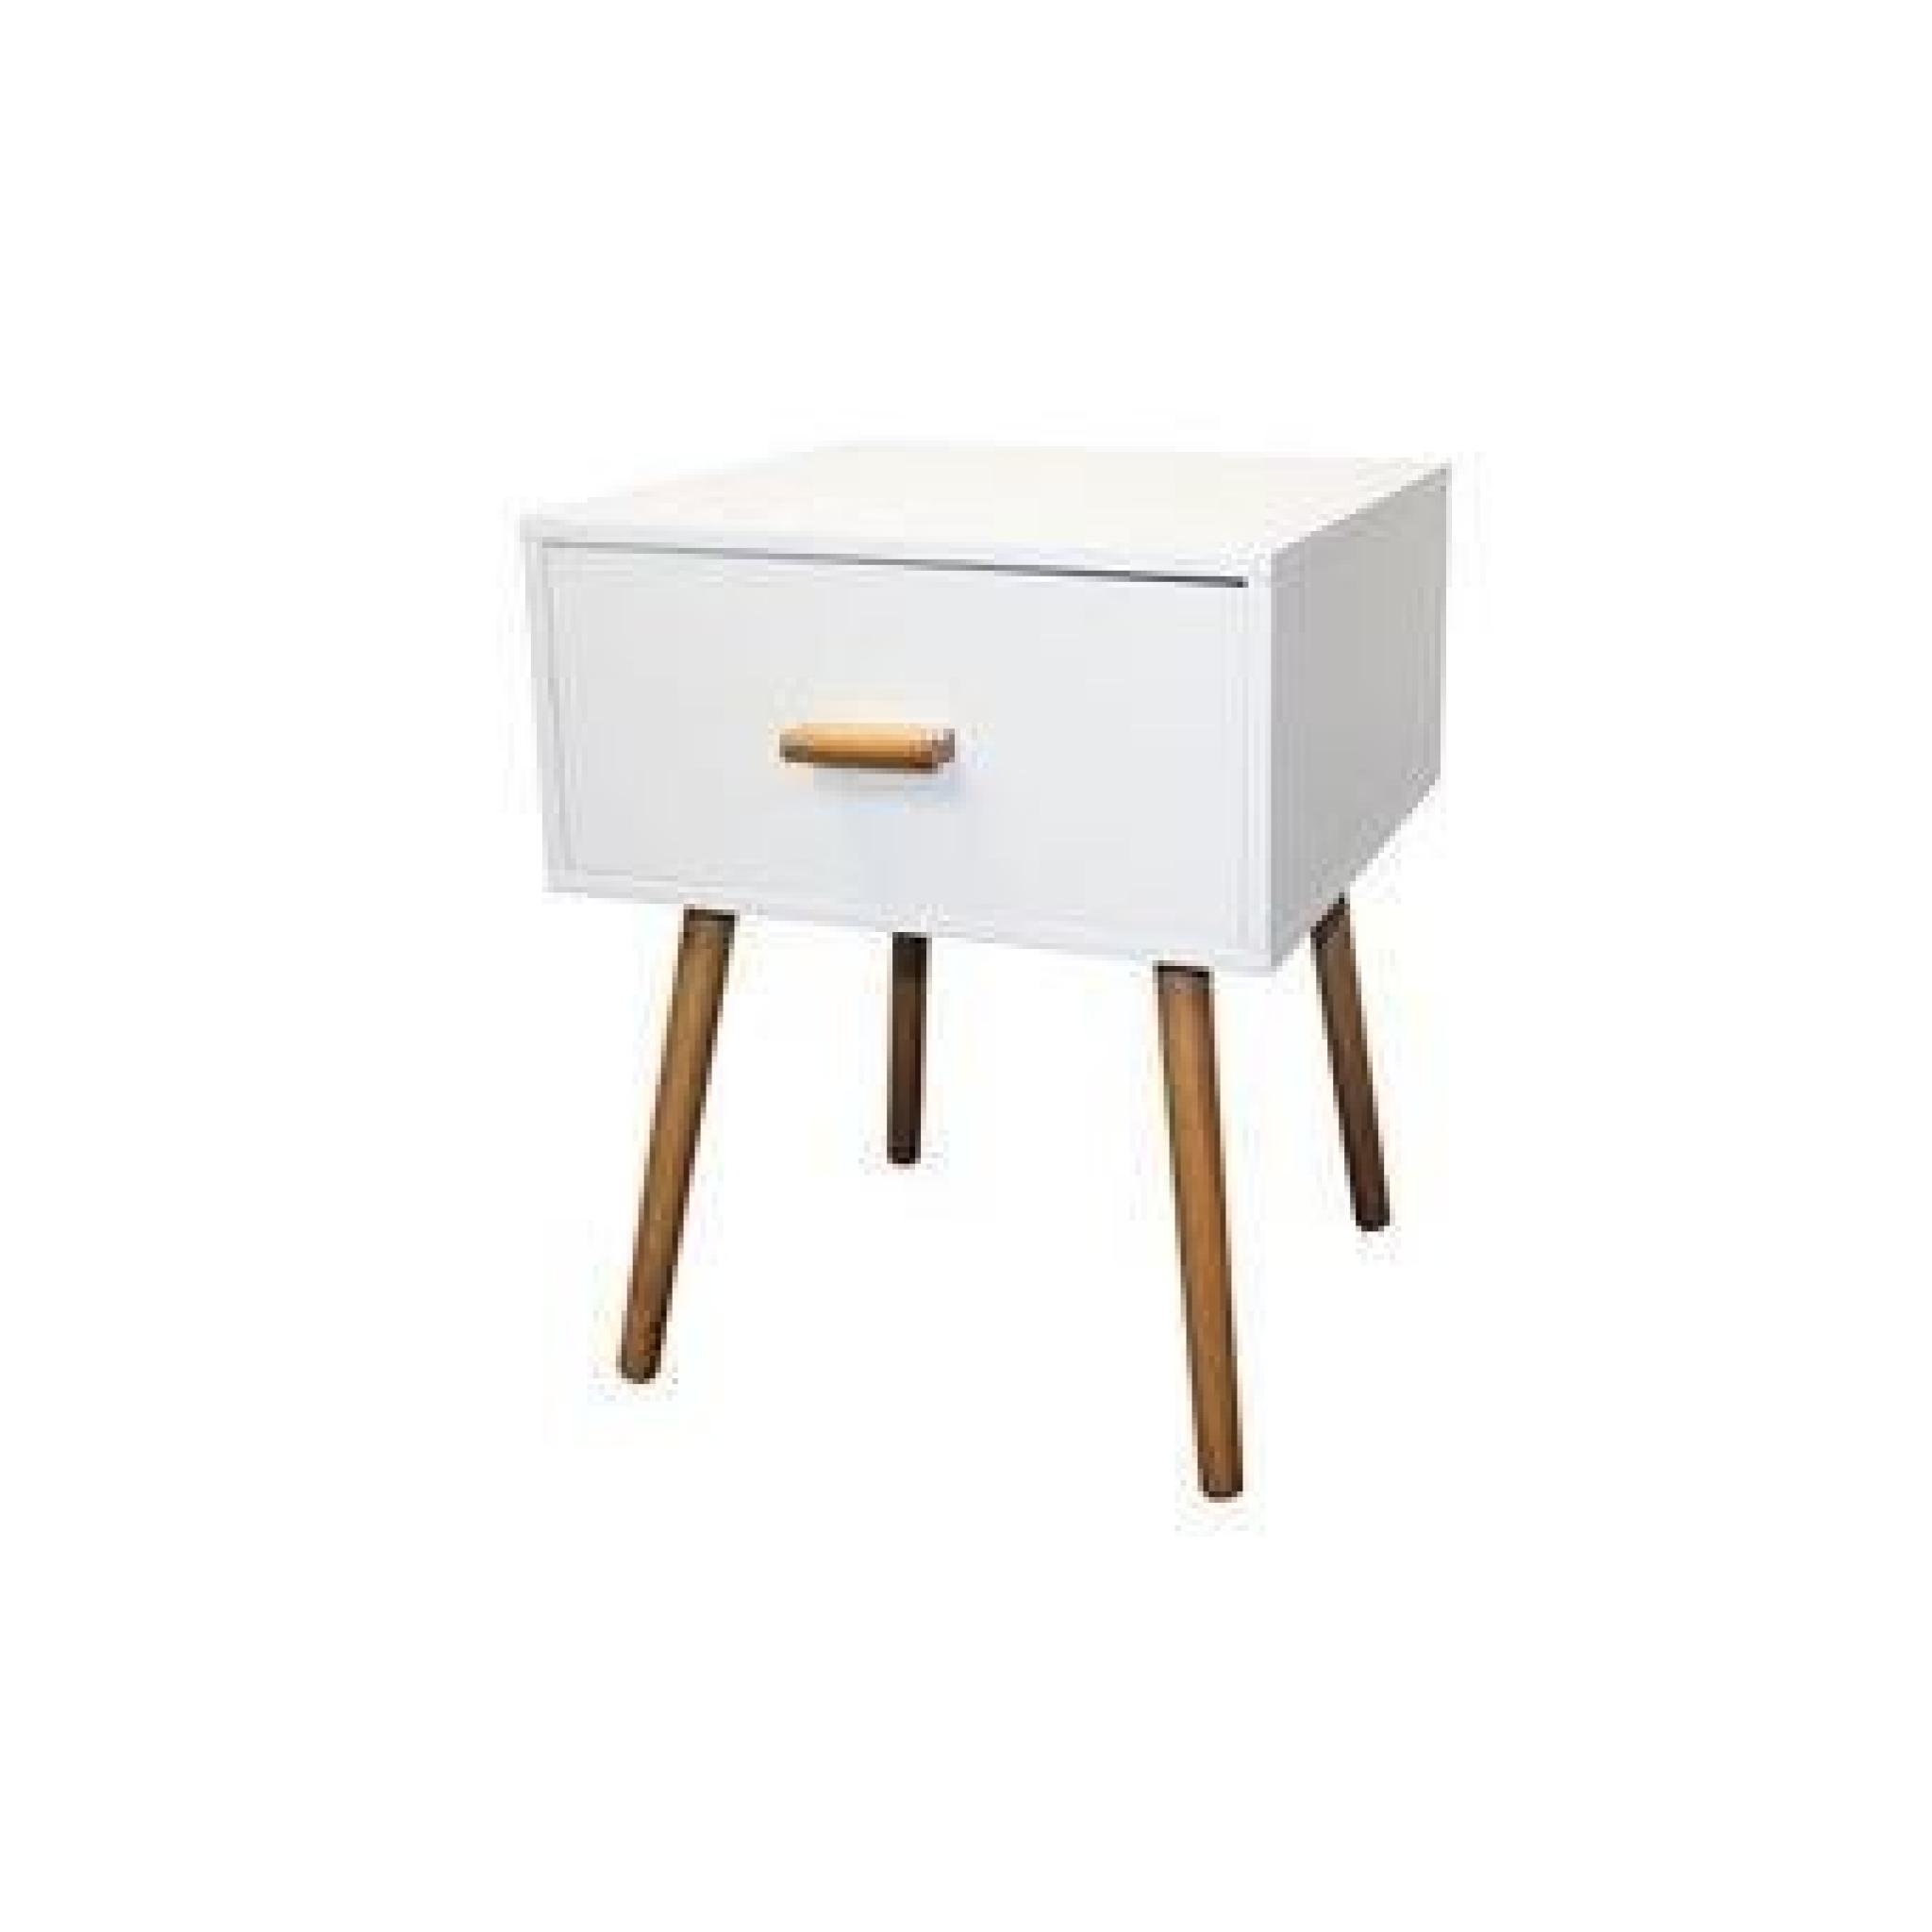 Table de chevet blanc design scandinave achat vente for Table de chevet design scandinave